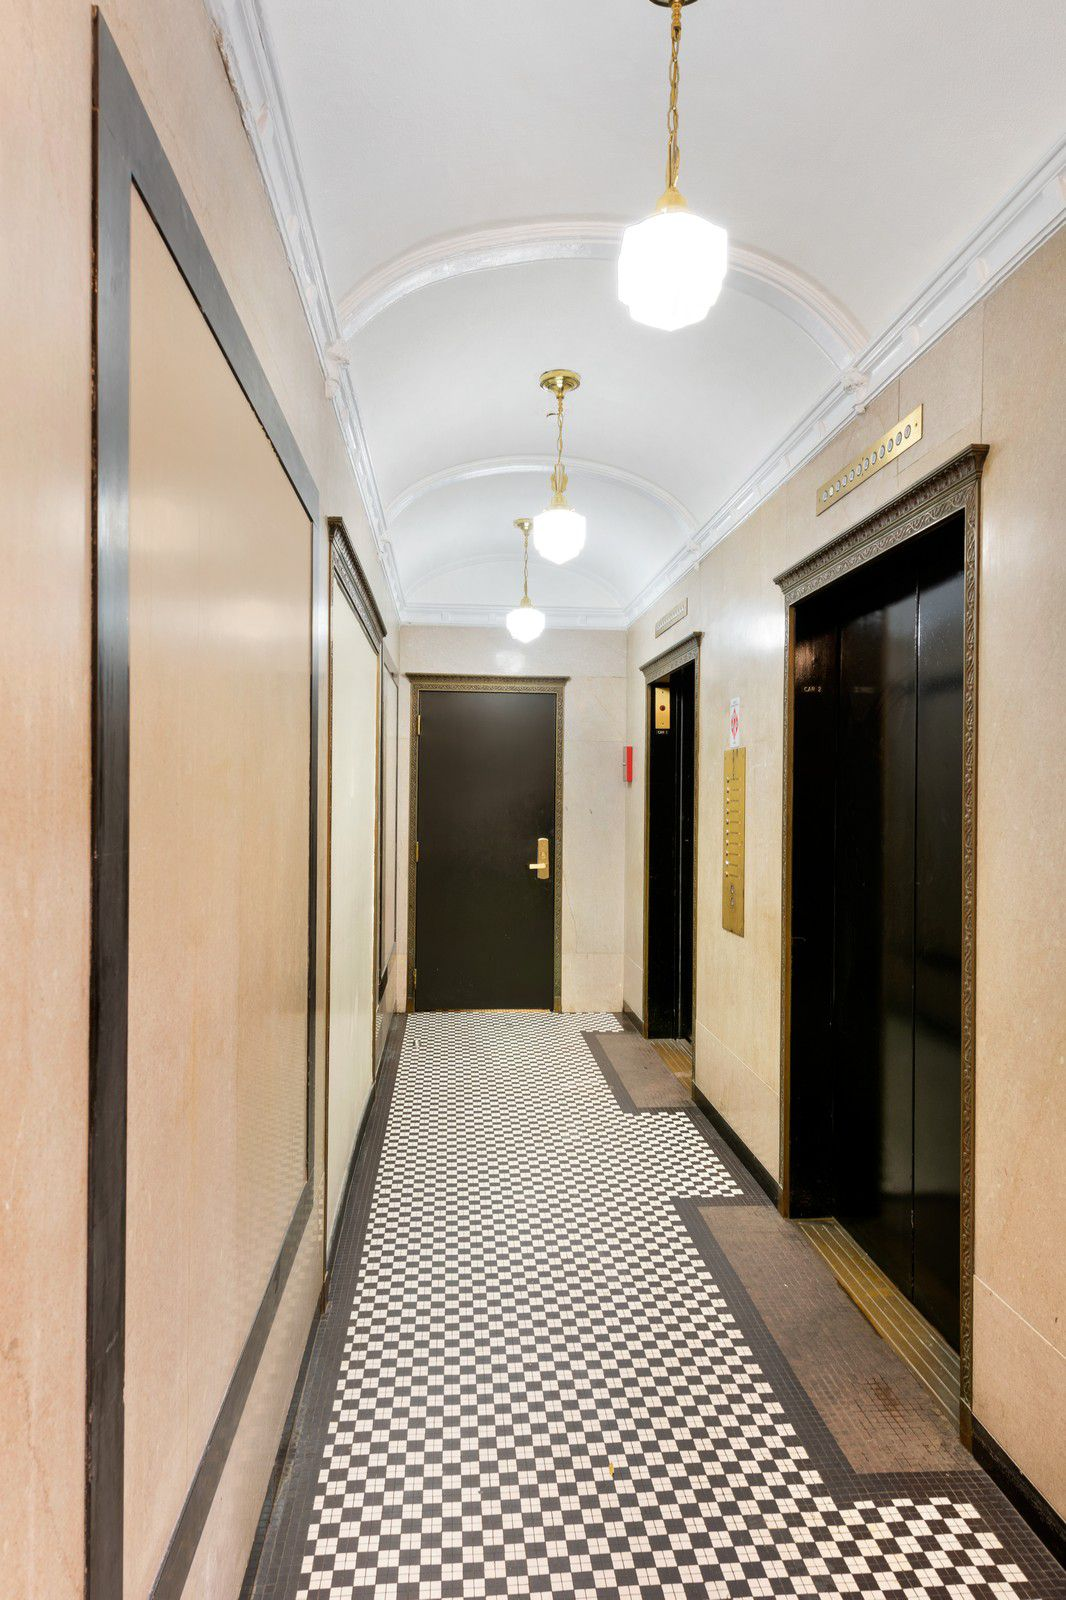 An elevator bank with a checkerboard floor and vaulted plaster ceiling.